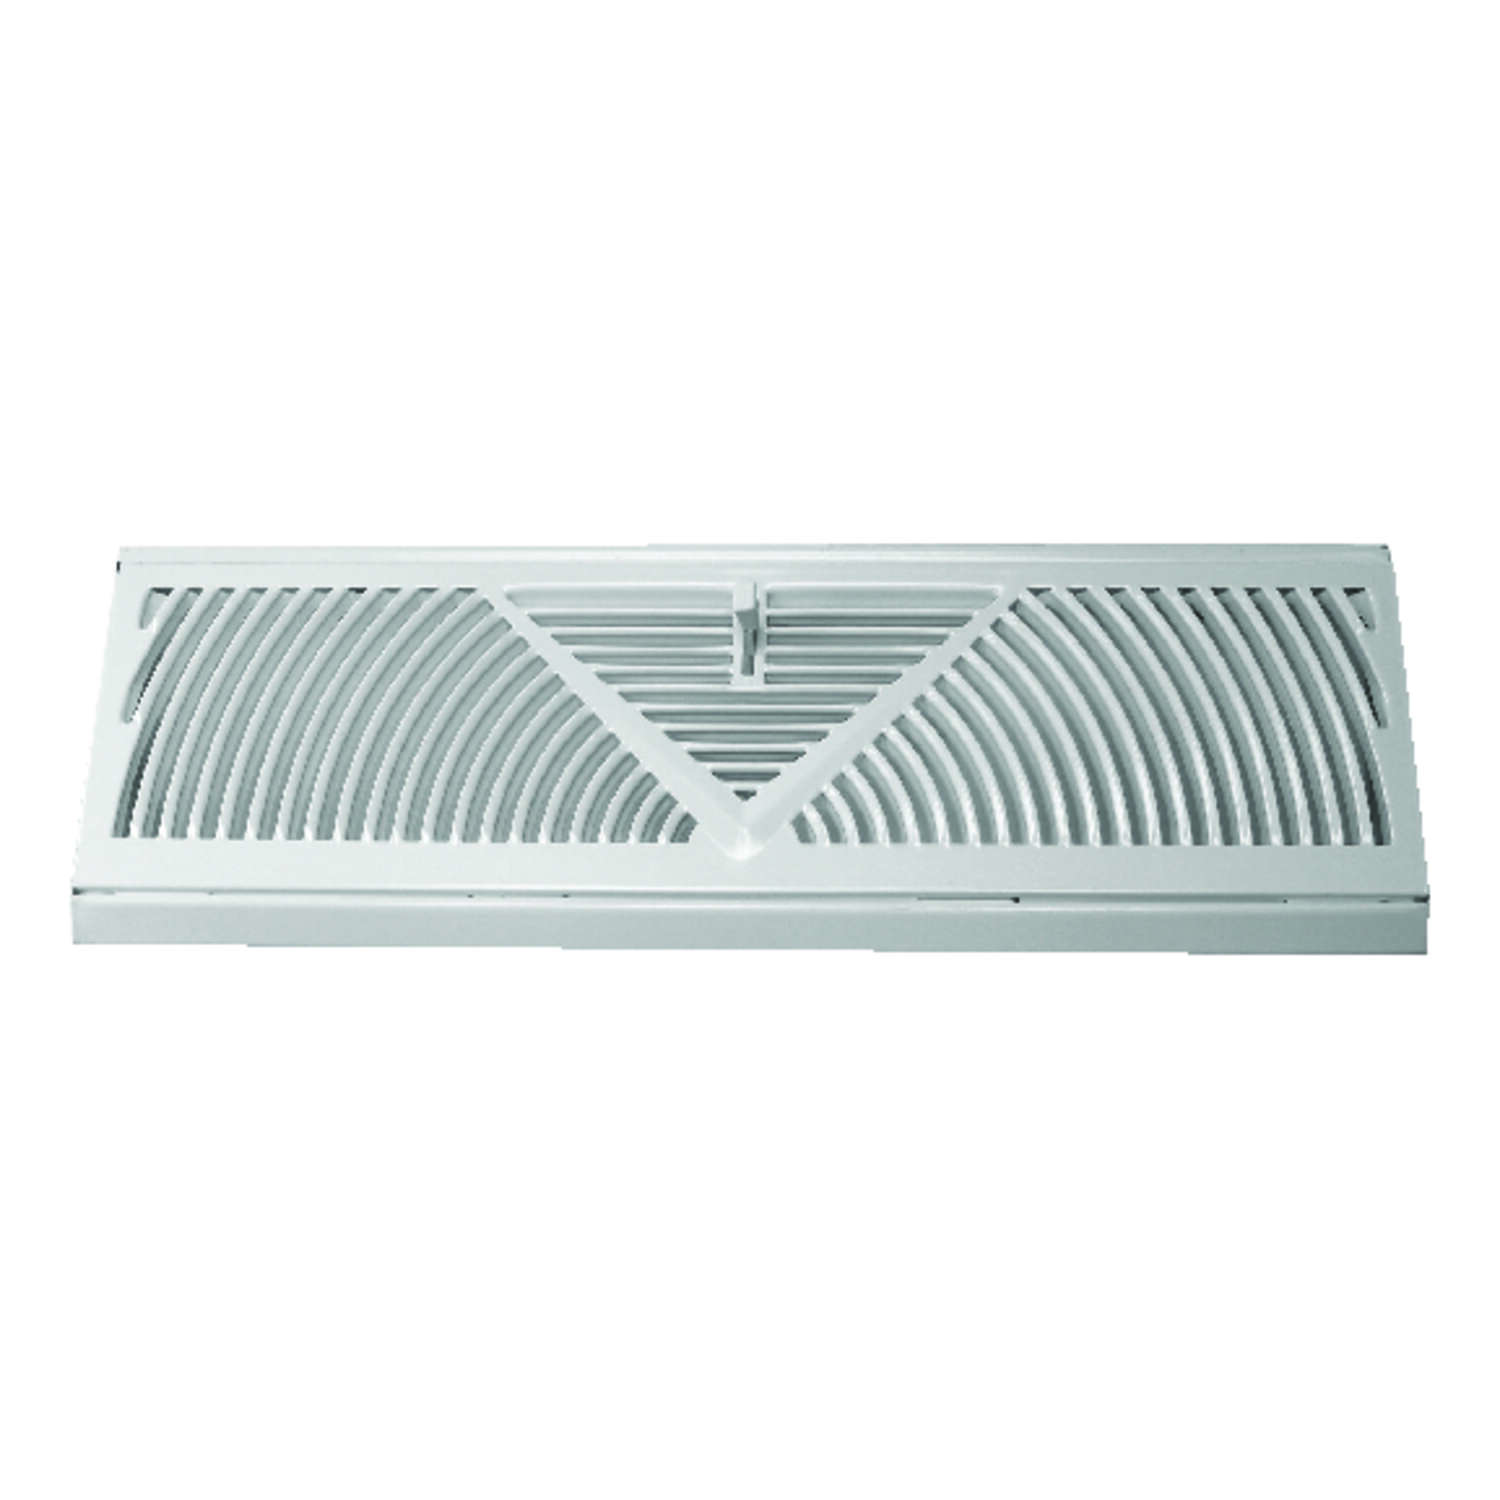 Tru Aire  4-1/2 in. H x 15 in. W 3-Way  Powder Coat  White  Steel  Baseboard Diffuser